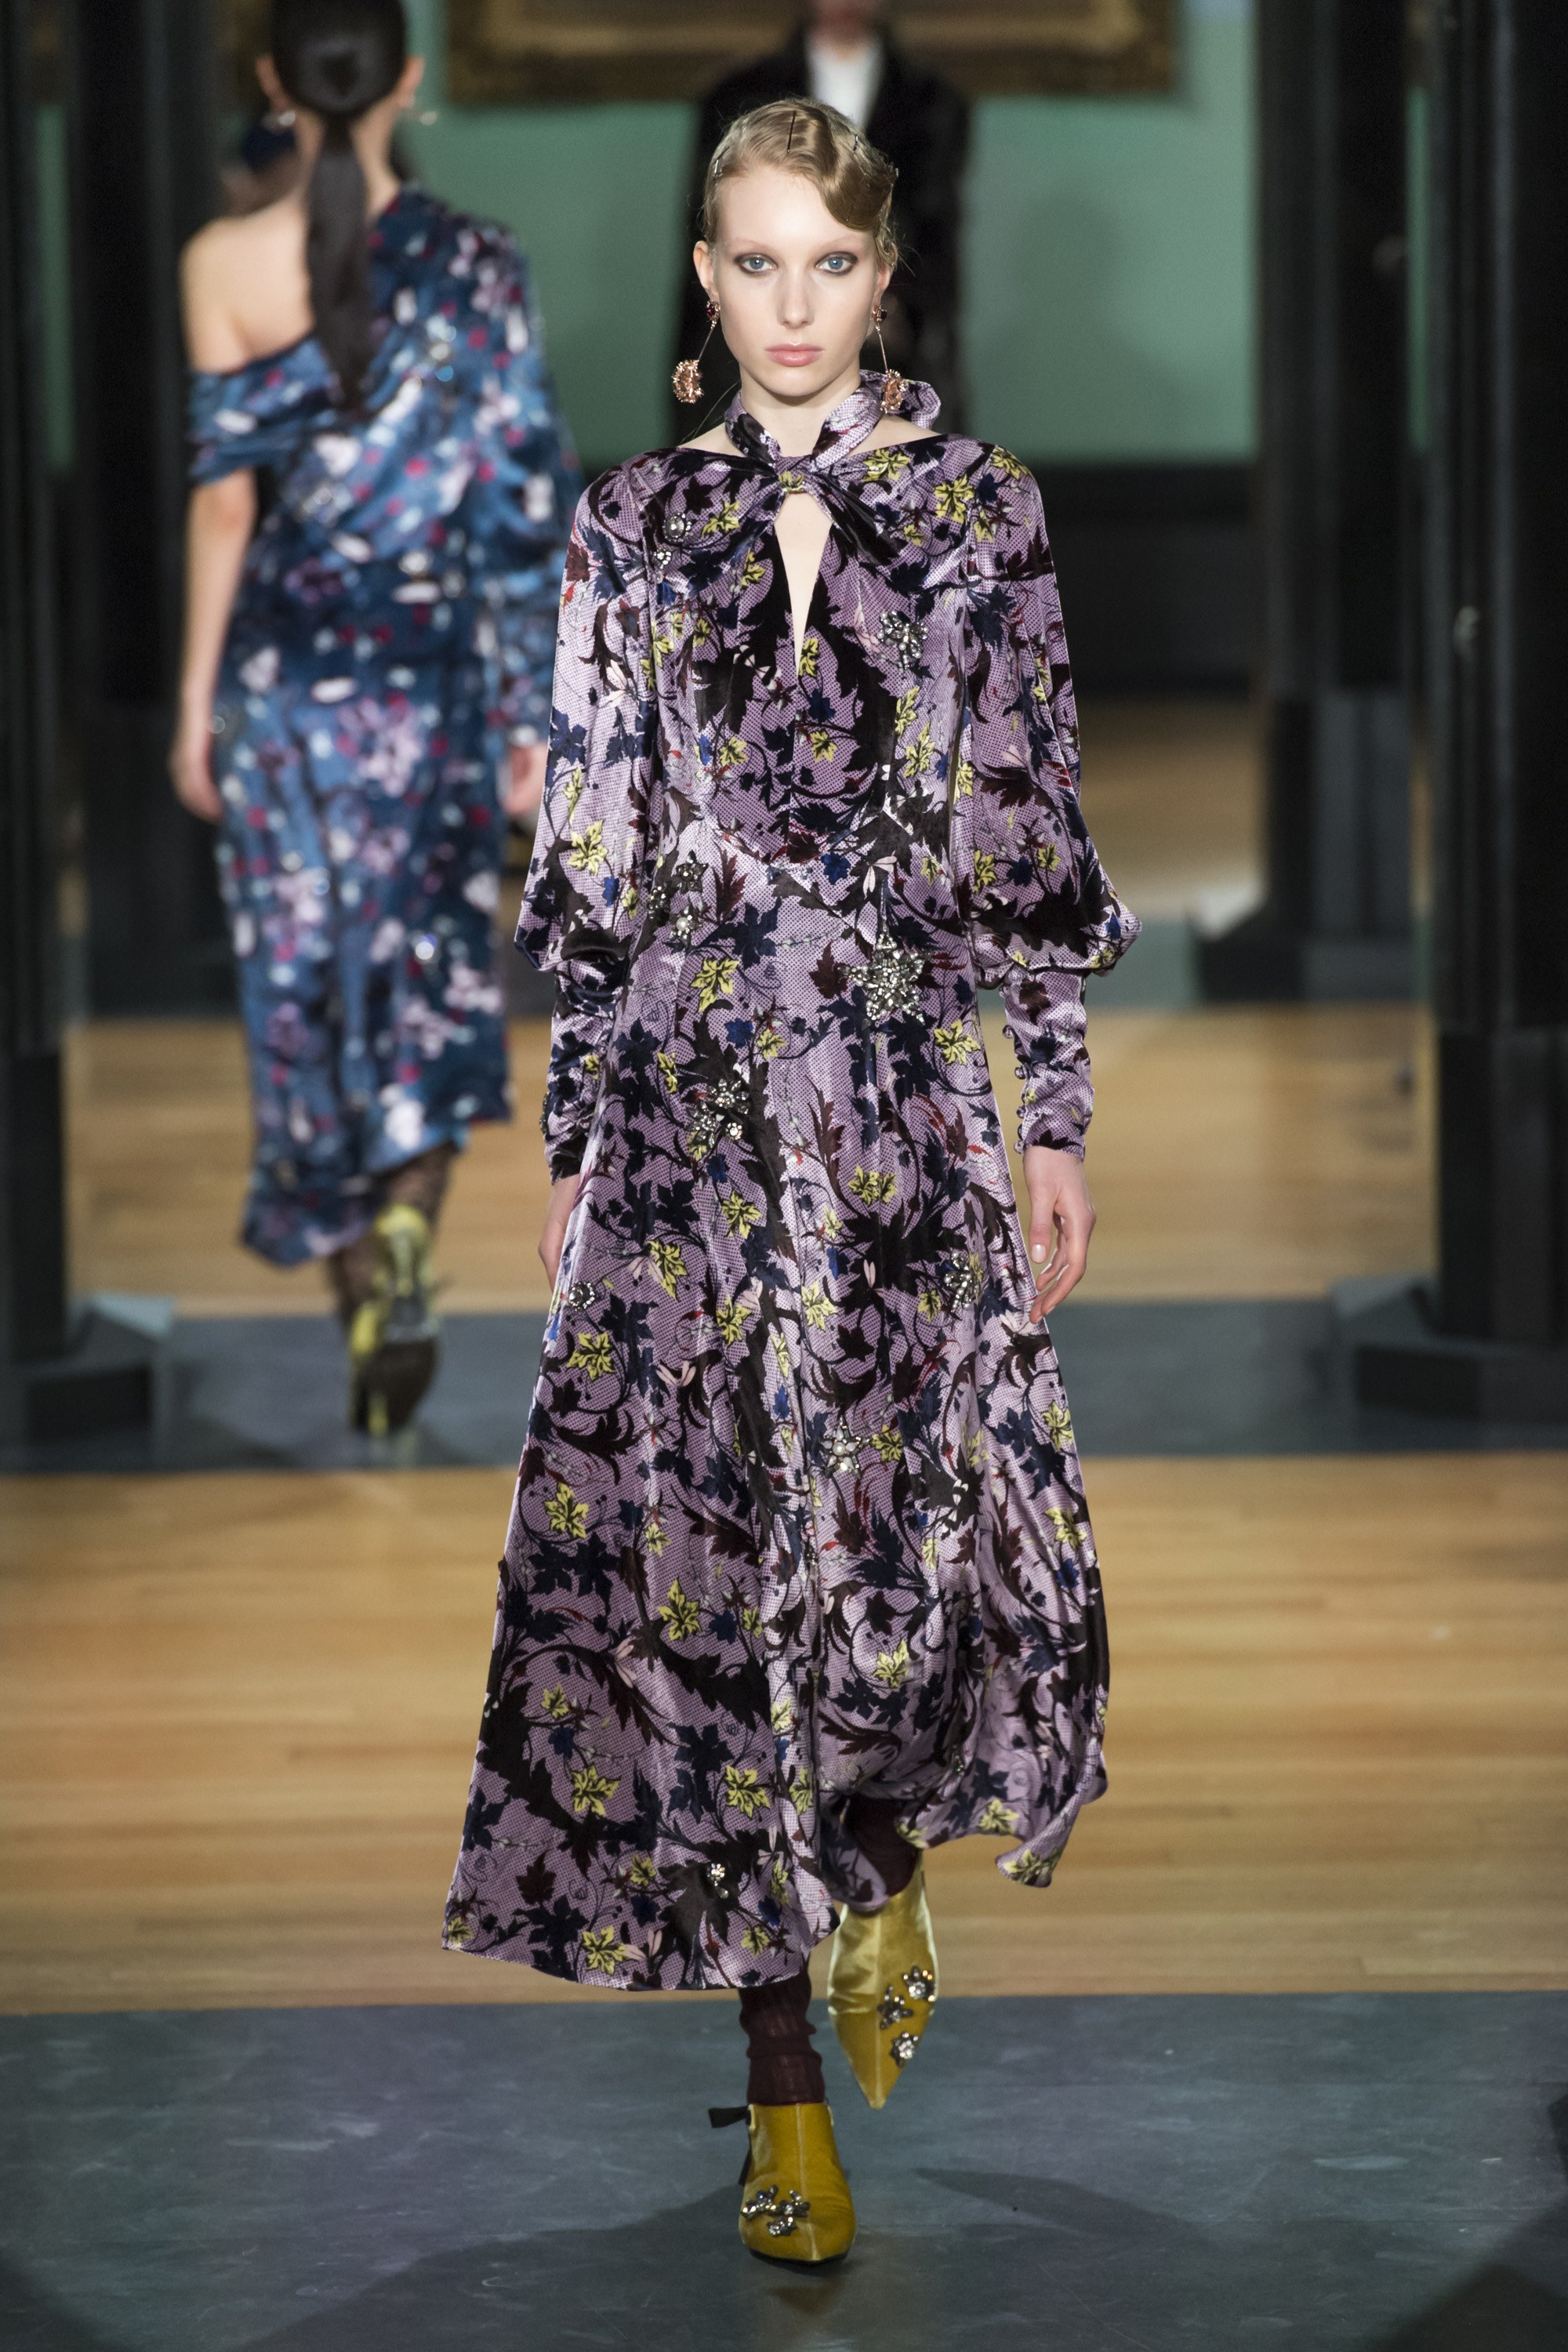 erdem-london-fashion-week-fall-2018-rtw-10.jpg